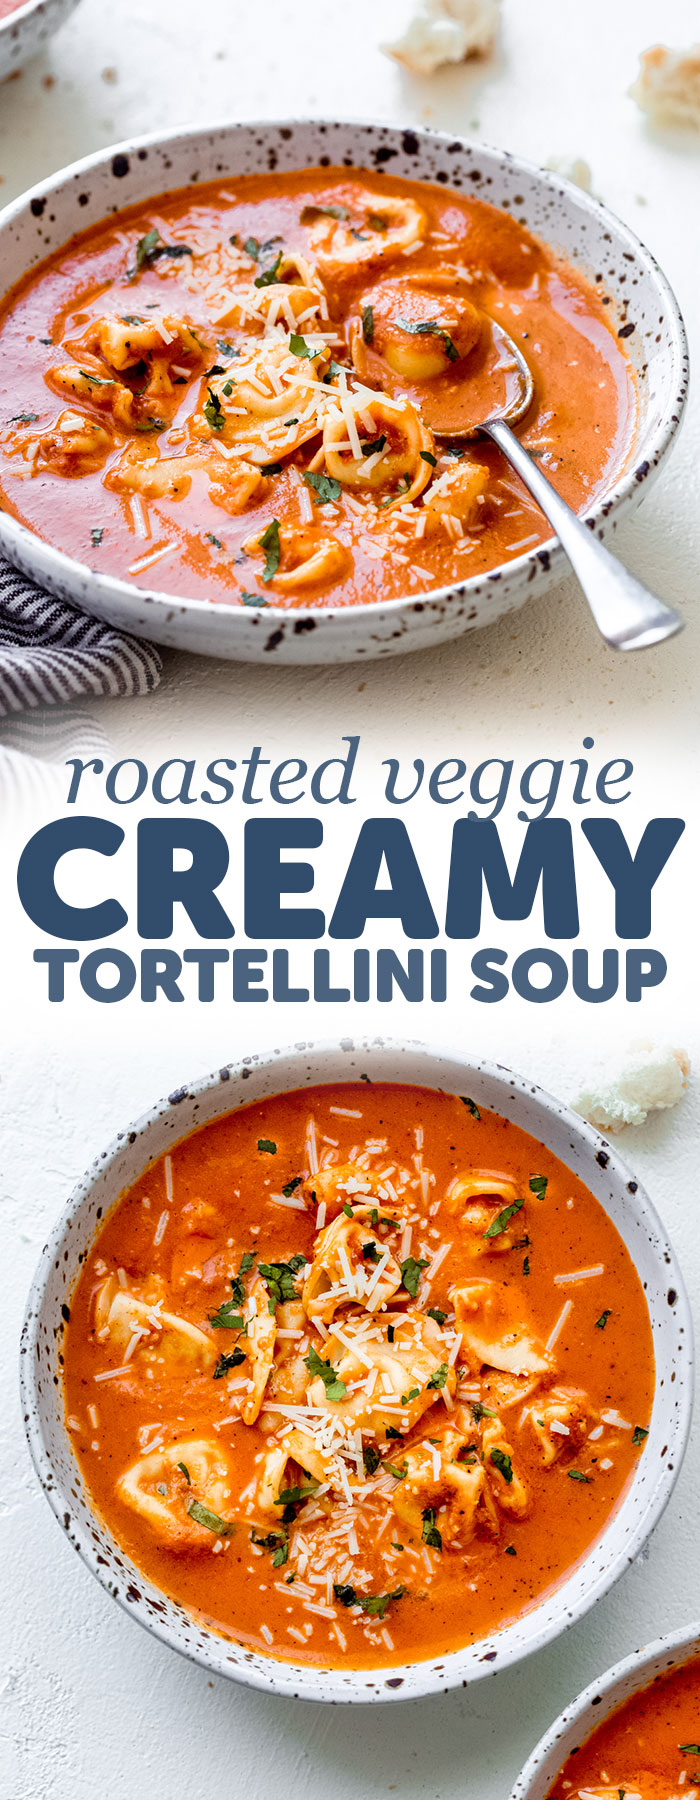 Roasted Veggie Creamy Tortellini Soup - Learn how to make the most veggie-packed creamy tortellini soup. Customize it by using veggie, cheese, or meat stuffed tortellini! #tortellinisoup #soup #roastedvegetablesoup #tortellinisoup | Littlespicejar.com